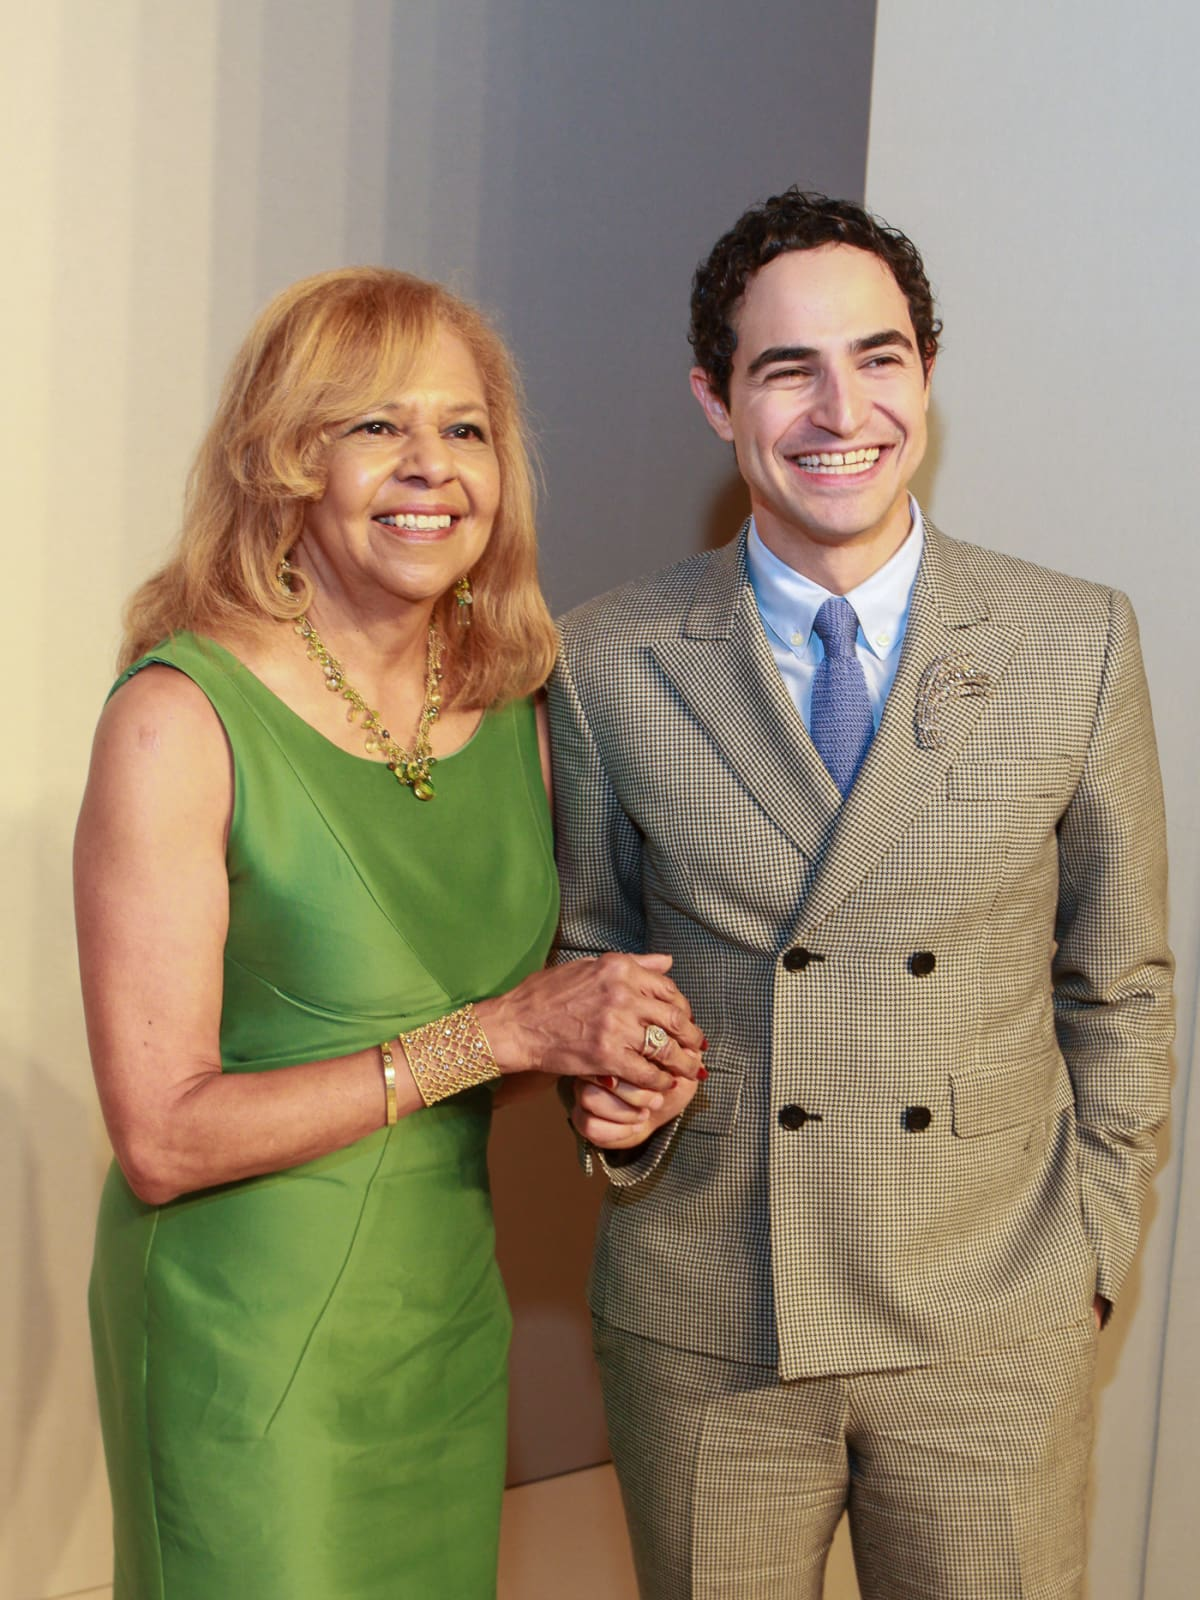 Best Dressed Luncheon, March 2016, Dr. Yvonne Cormier, Zac Posen